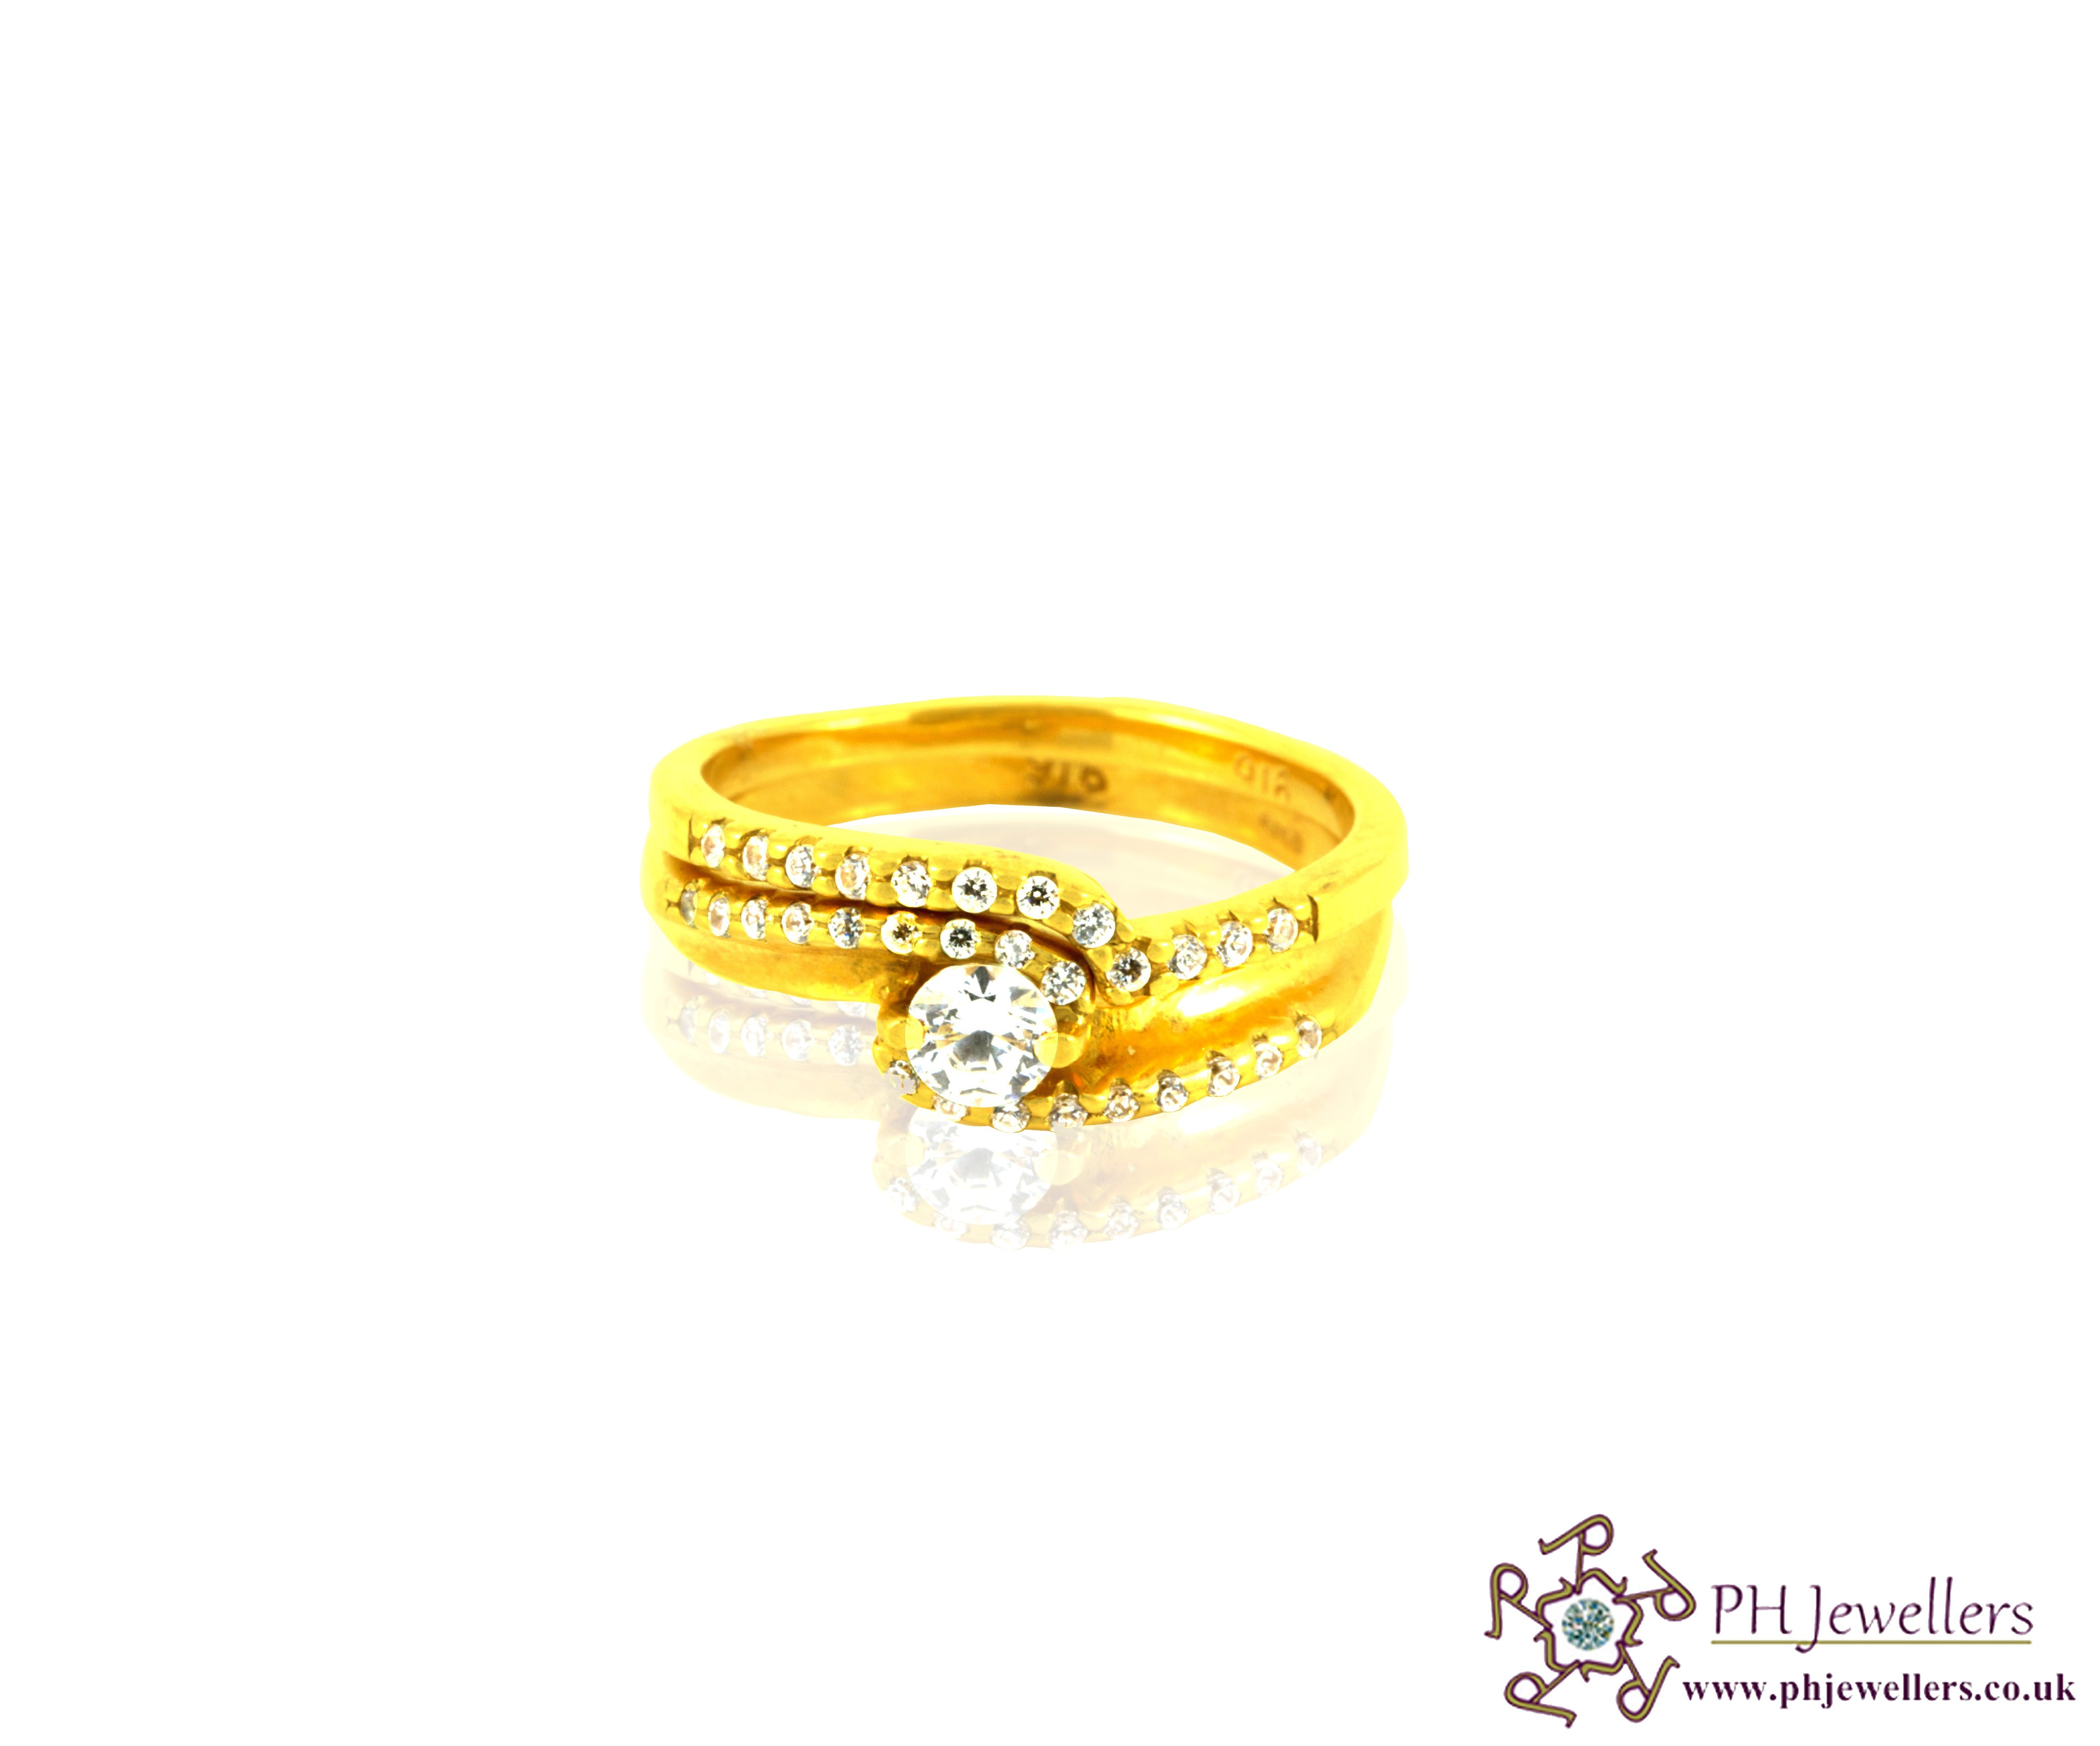 22ct 916 Hallmark Yellow Gold Wedding Band Set Round N/O Ring CZ WBS1